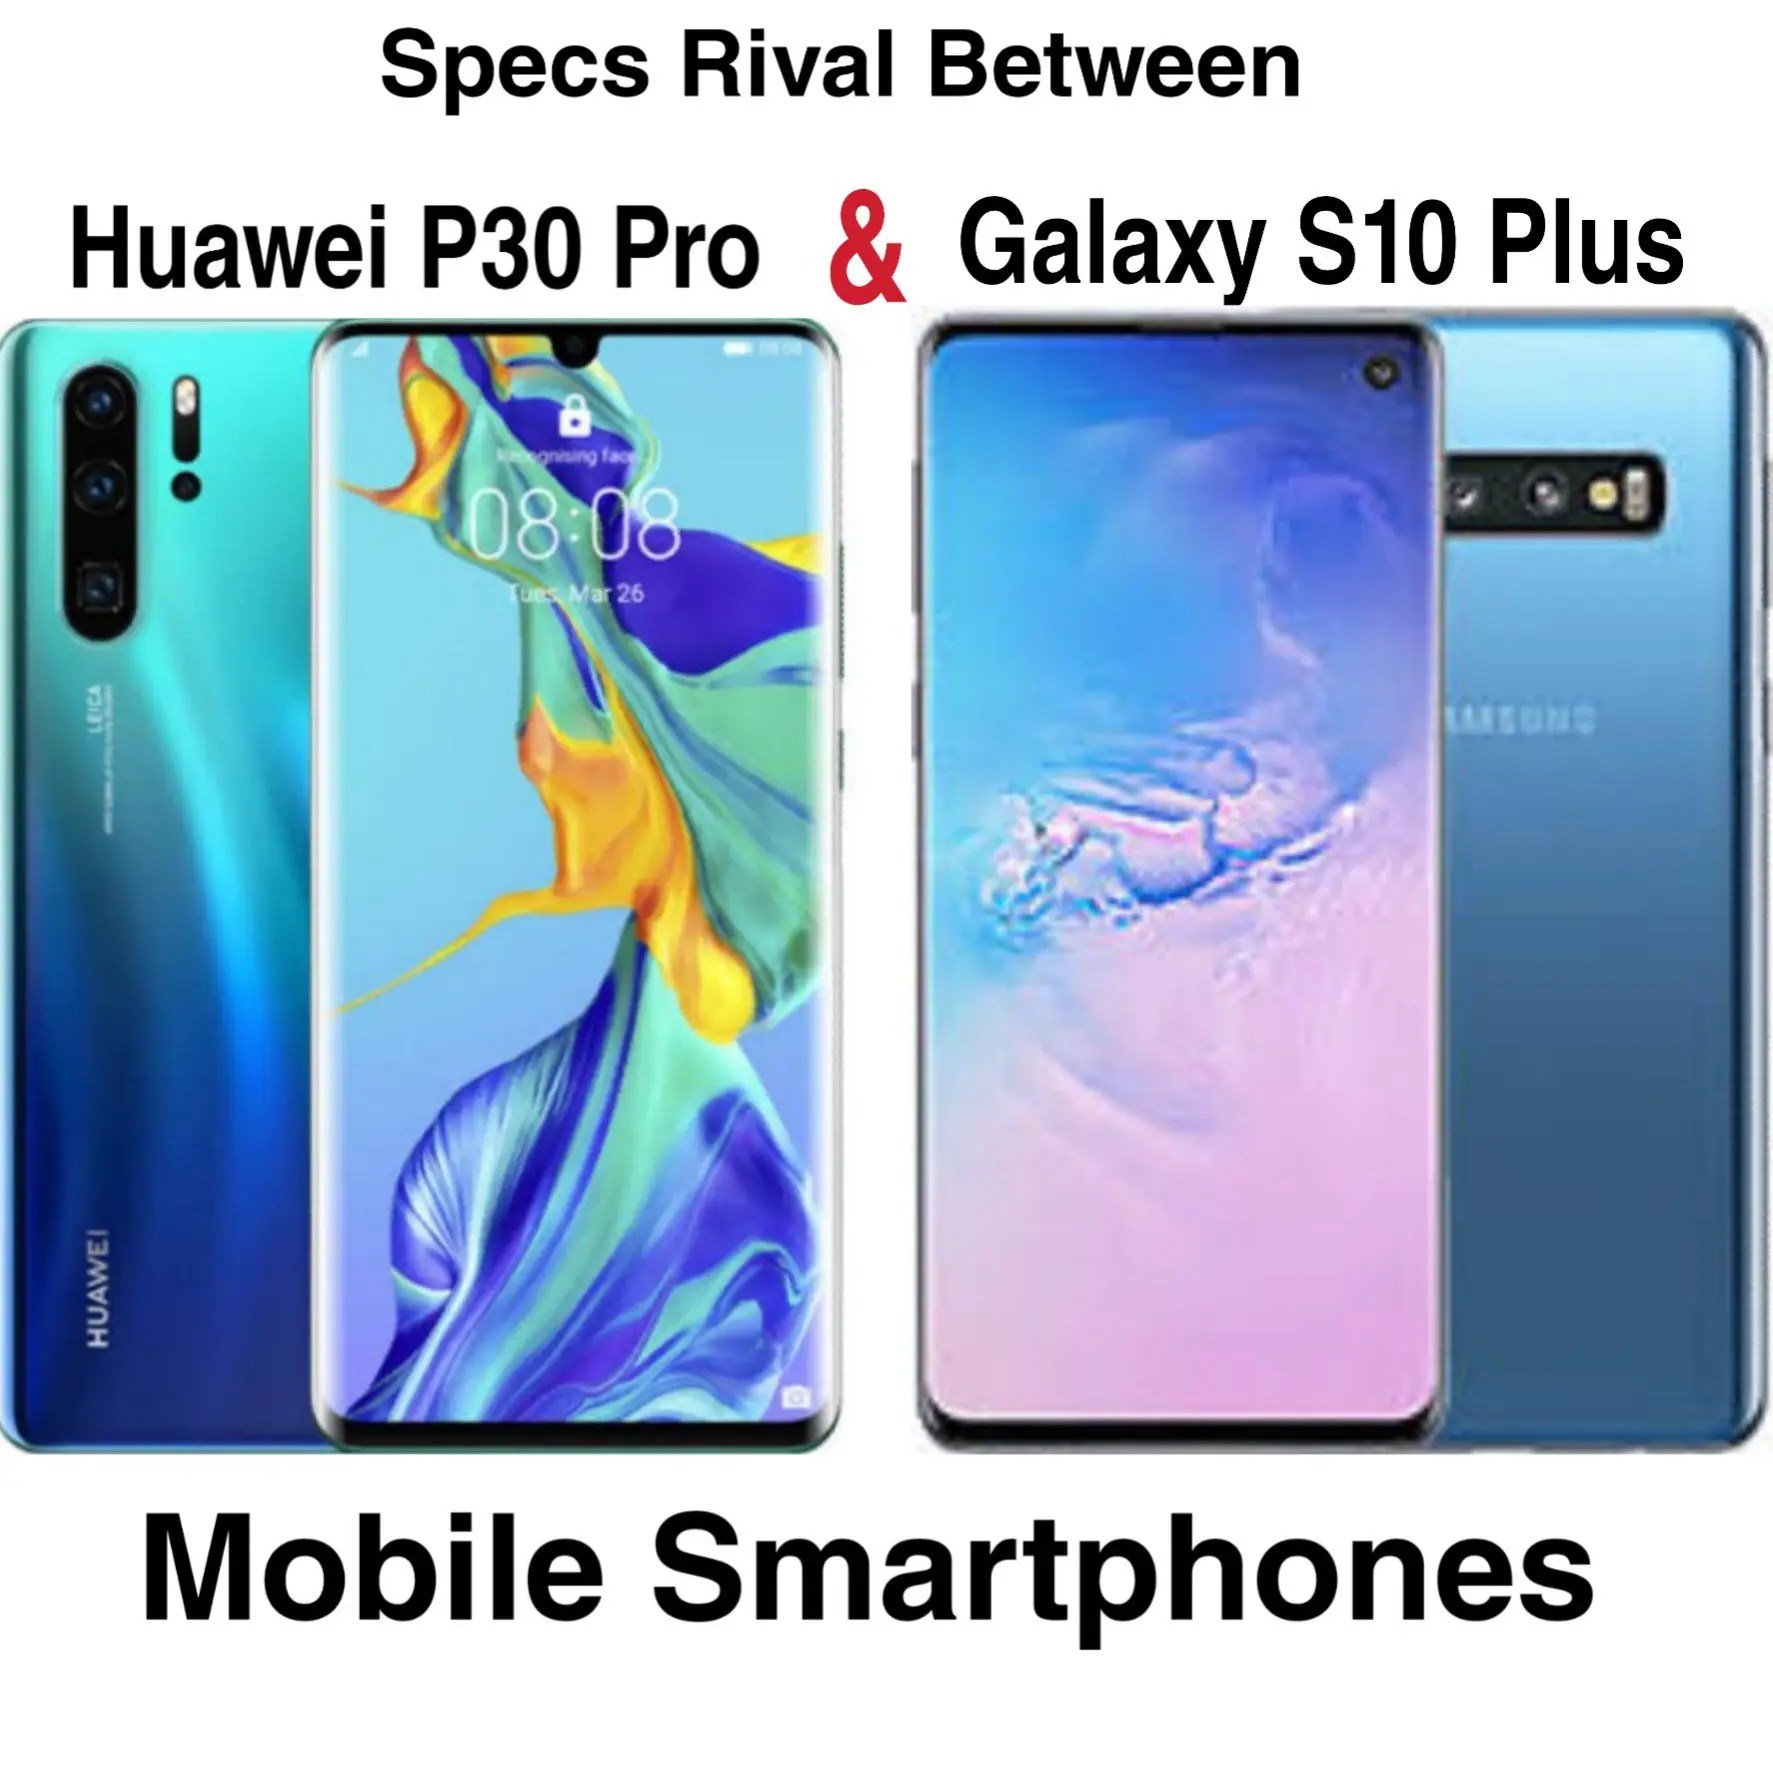 Should You Buy Galaxy S10 Plus Or Huawei P30 Pro Smartphone? - Find Out • Gadget Techs & Game Reviews